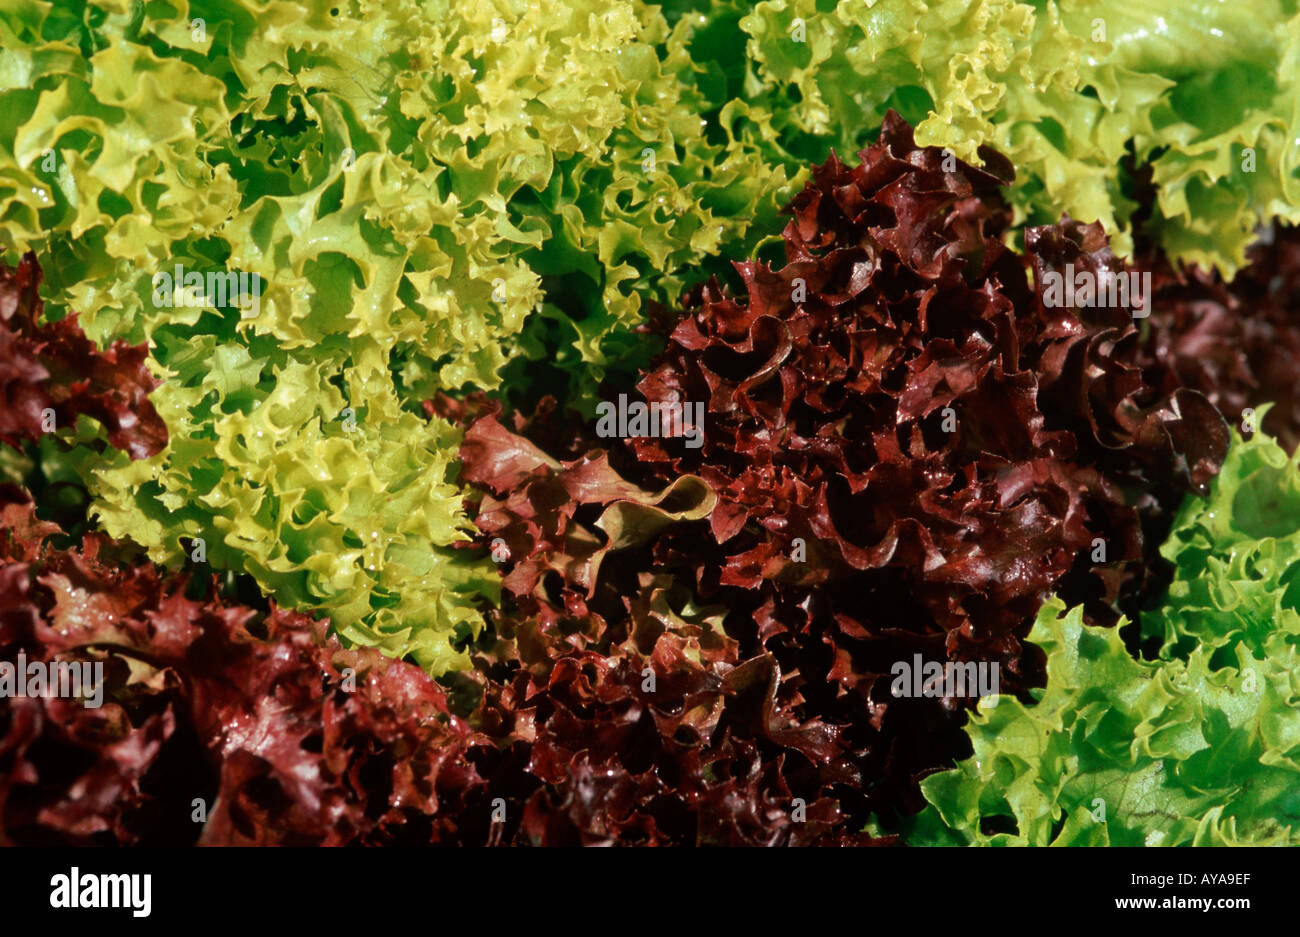 lettuce lollo rosso salat background gemuese vegetable nahrungsmittel stock photo royalty free. Black Bedroom Furniture Sets. Home Design Ideas